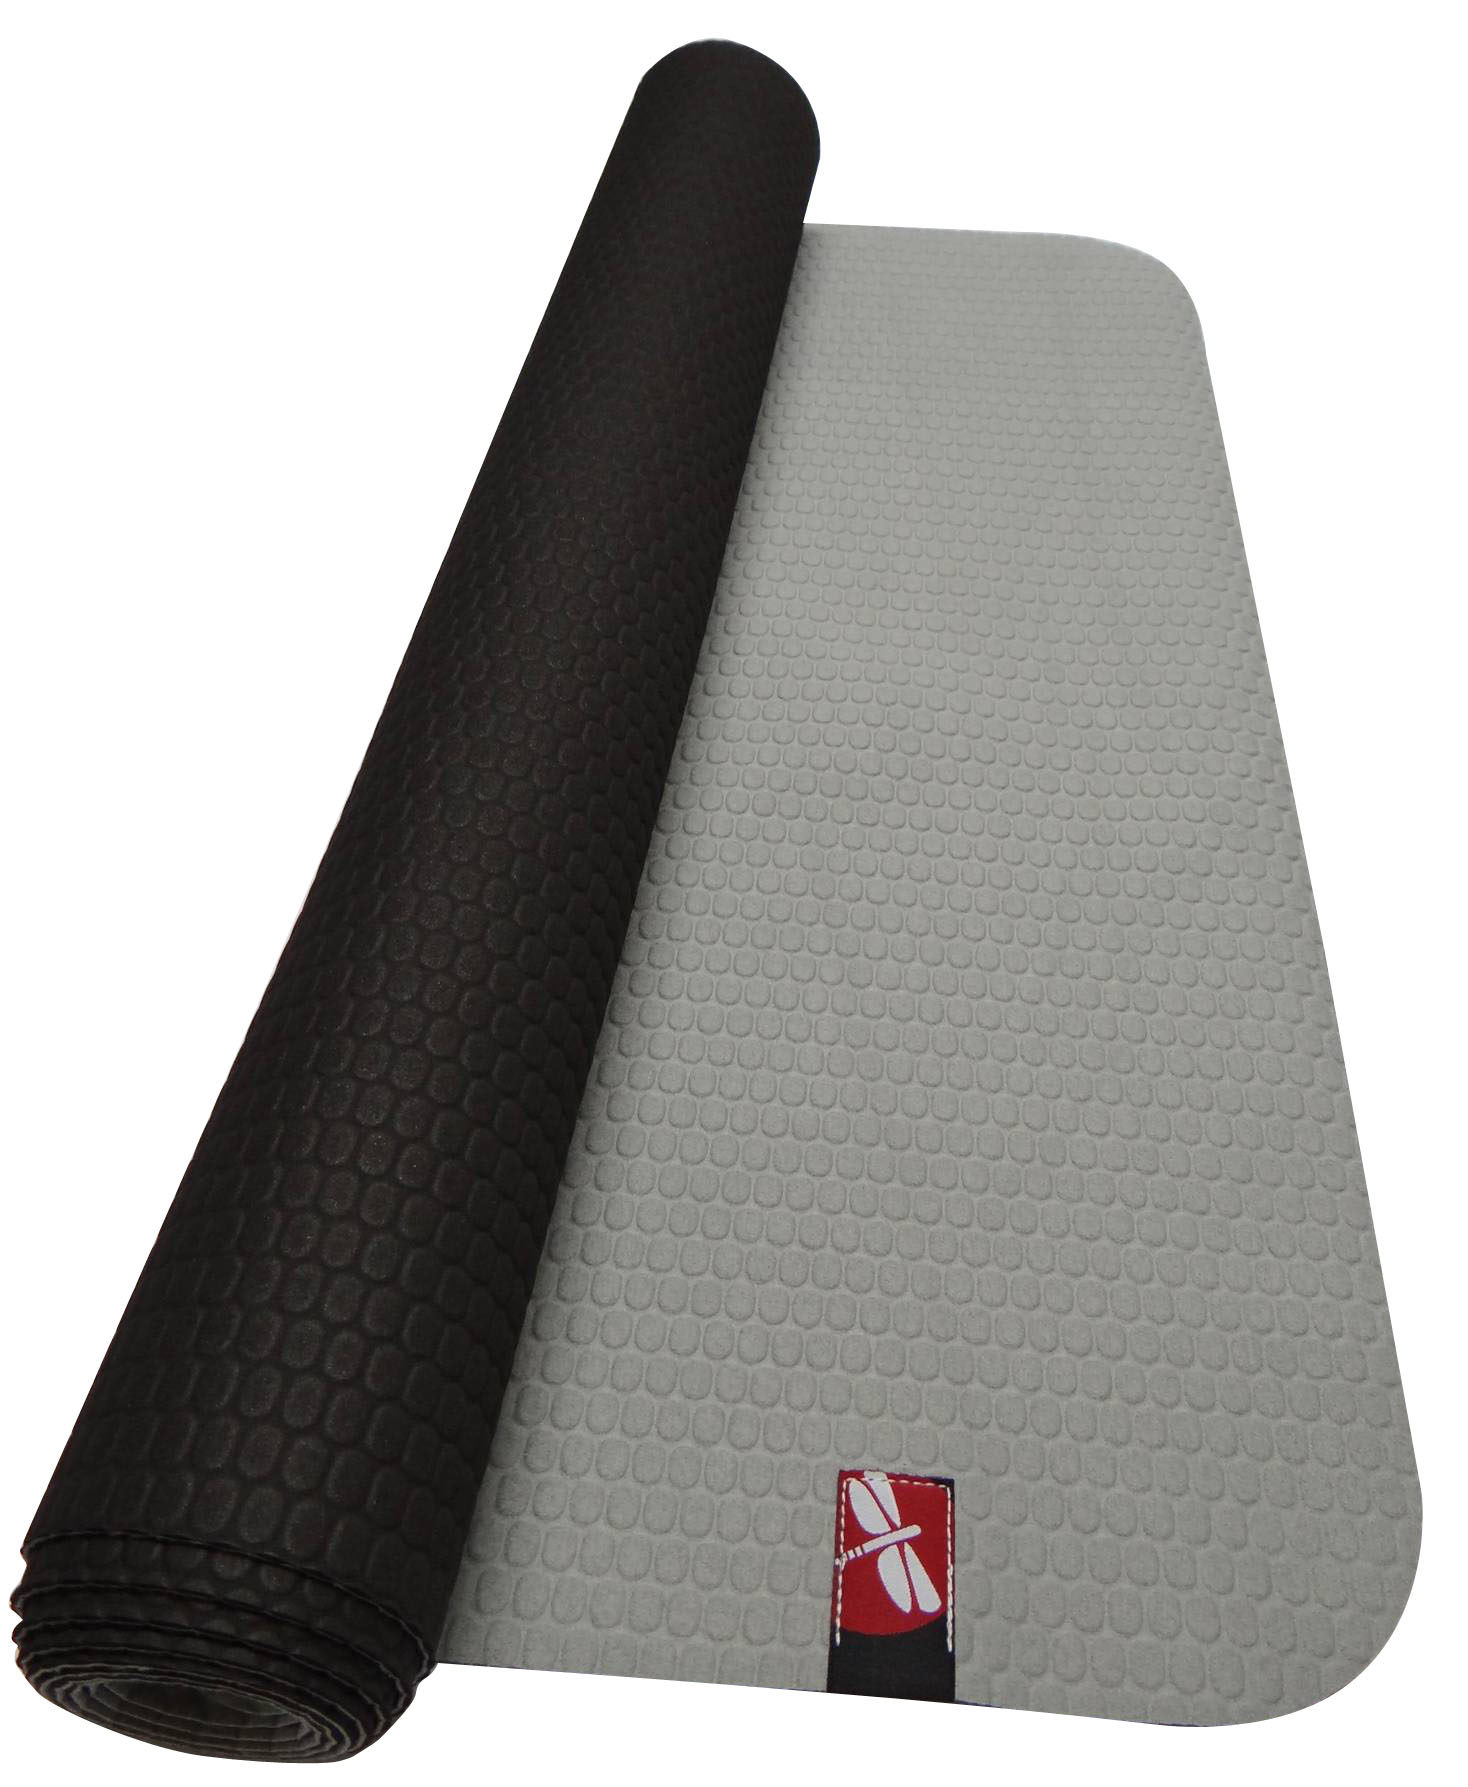 Dragonfly Tpe Hot Yoga Mat Towel Yoga Direct